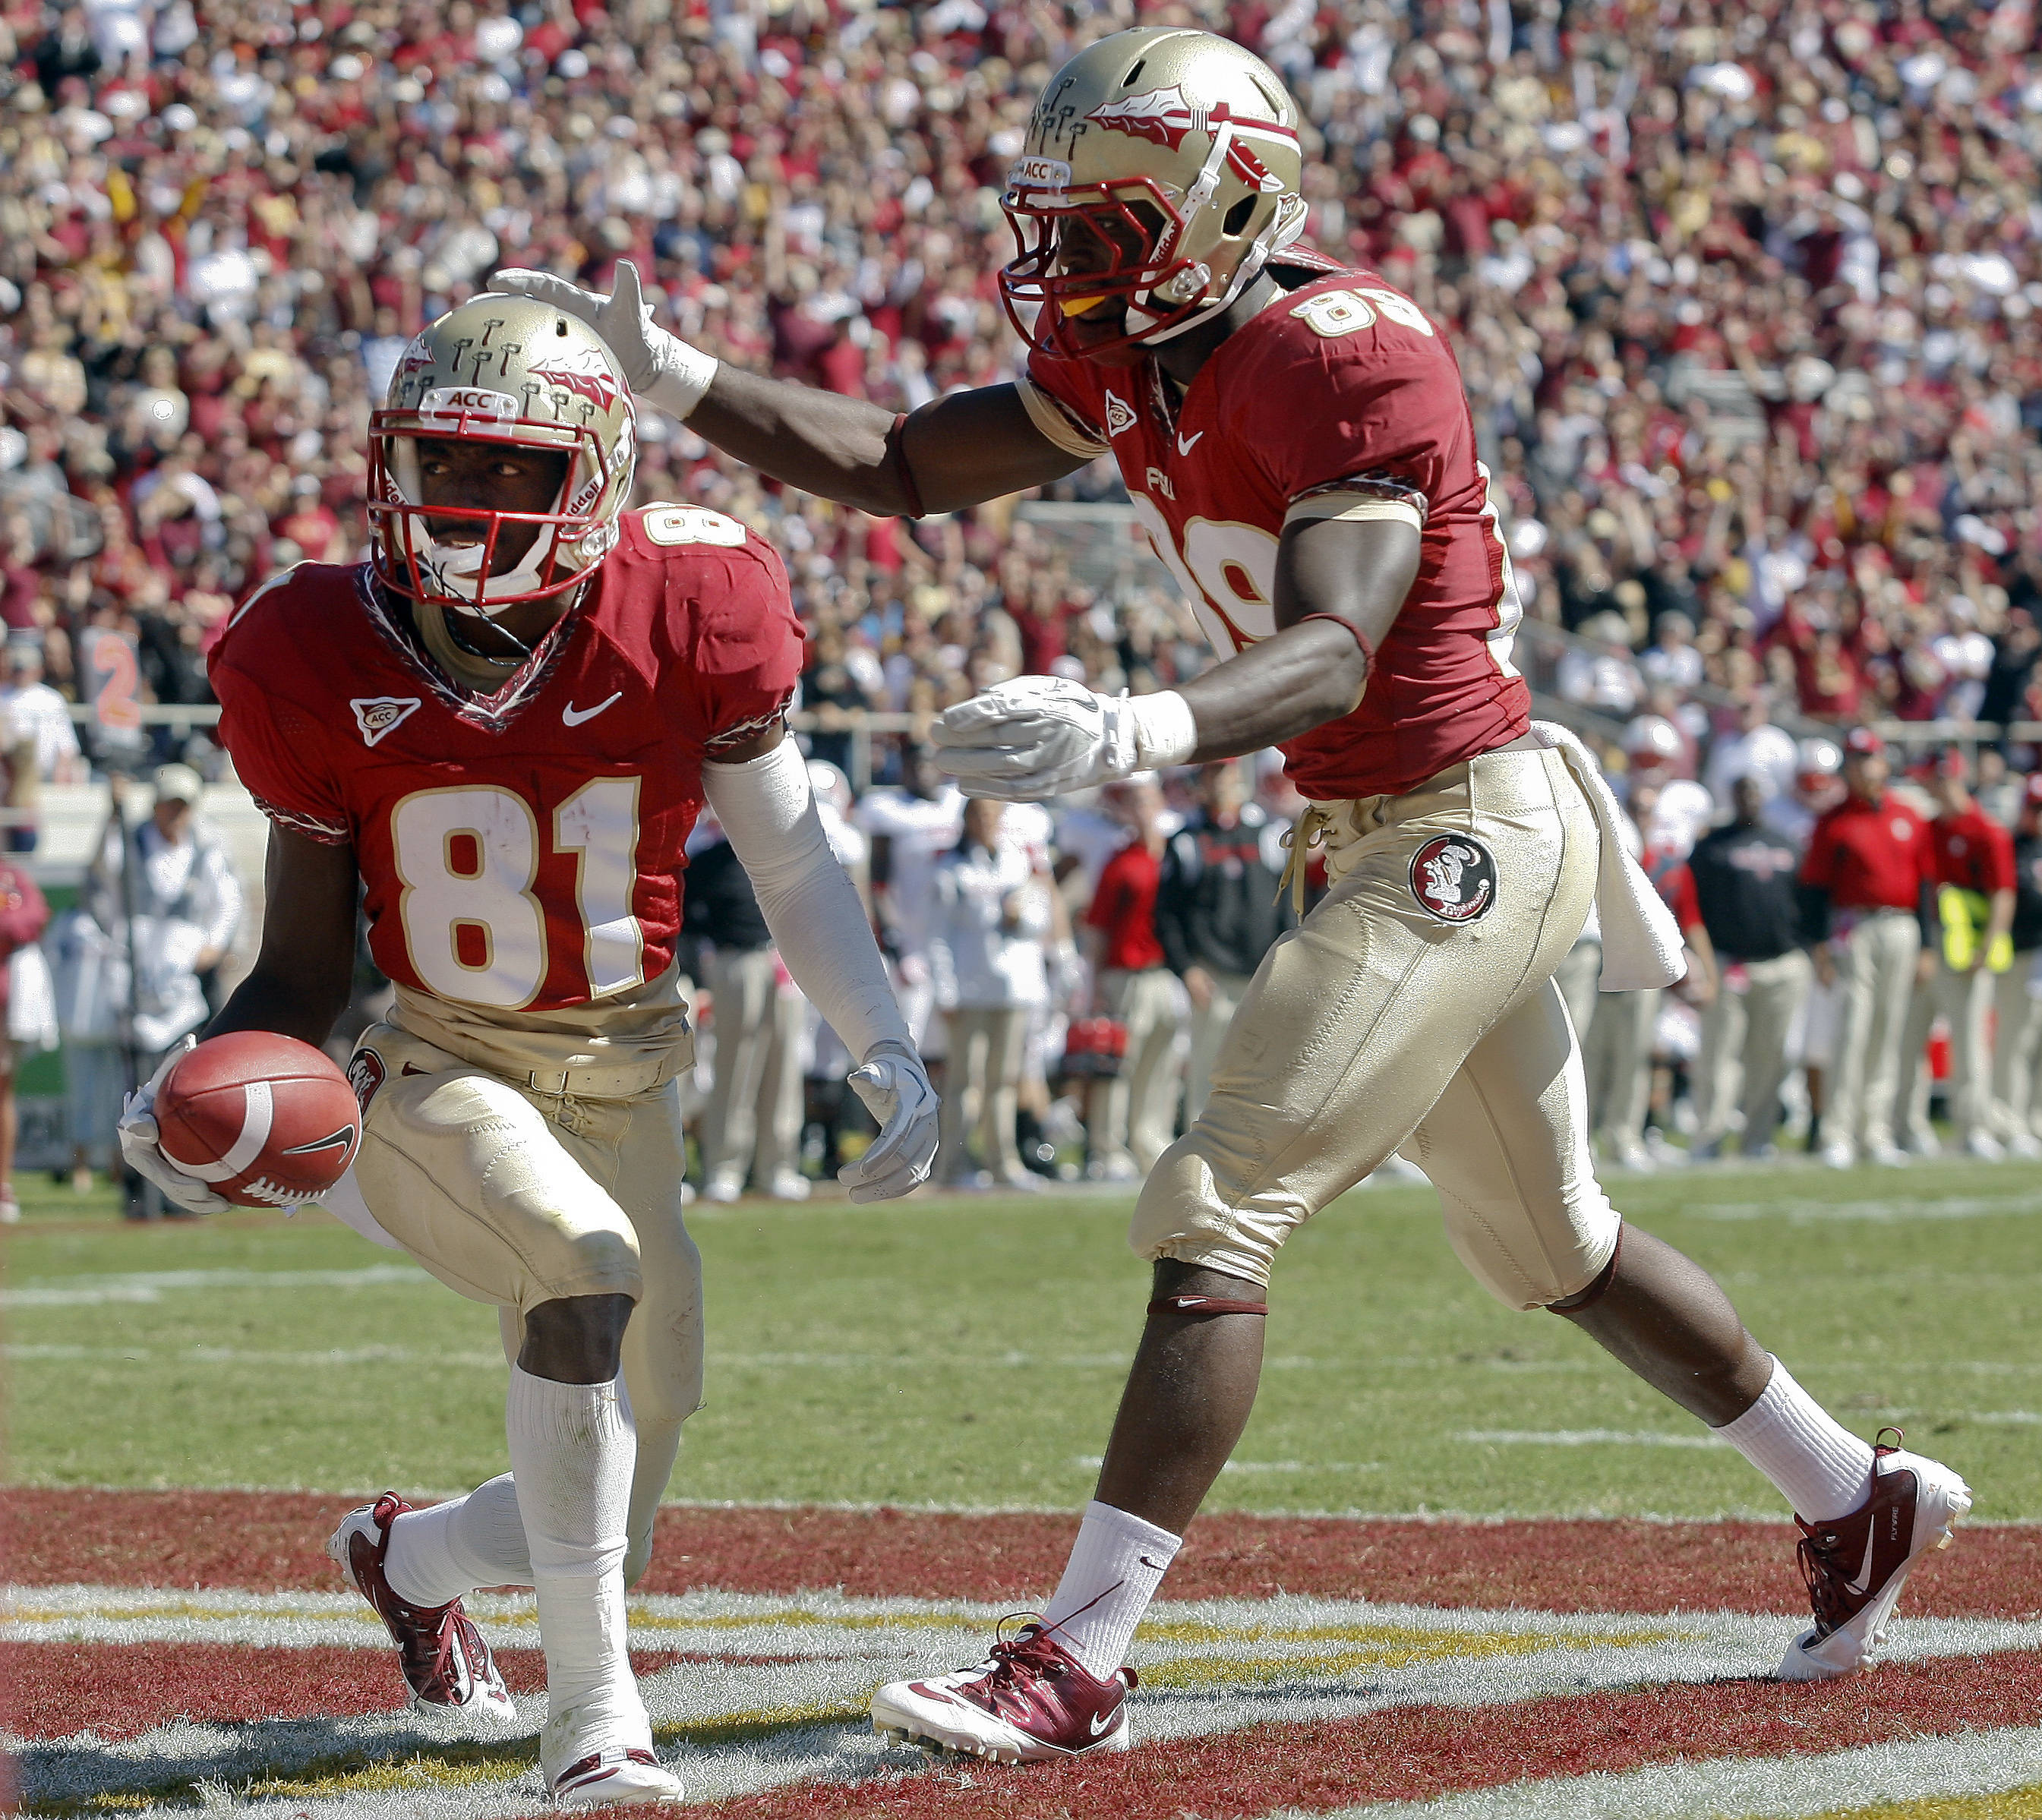 Florida State wide receiver Kenny Shaw (81) is congratulated by wide receiver Christian Green (89) after catching a 20-yard touchdown pass against North Carolina State in the second quarter of an NCAA college football game at Doak Campbell Stadium in Tallahassee, Fla., Saturday, Oct. 29, 2011. (AP Photo/Phil Sears)